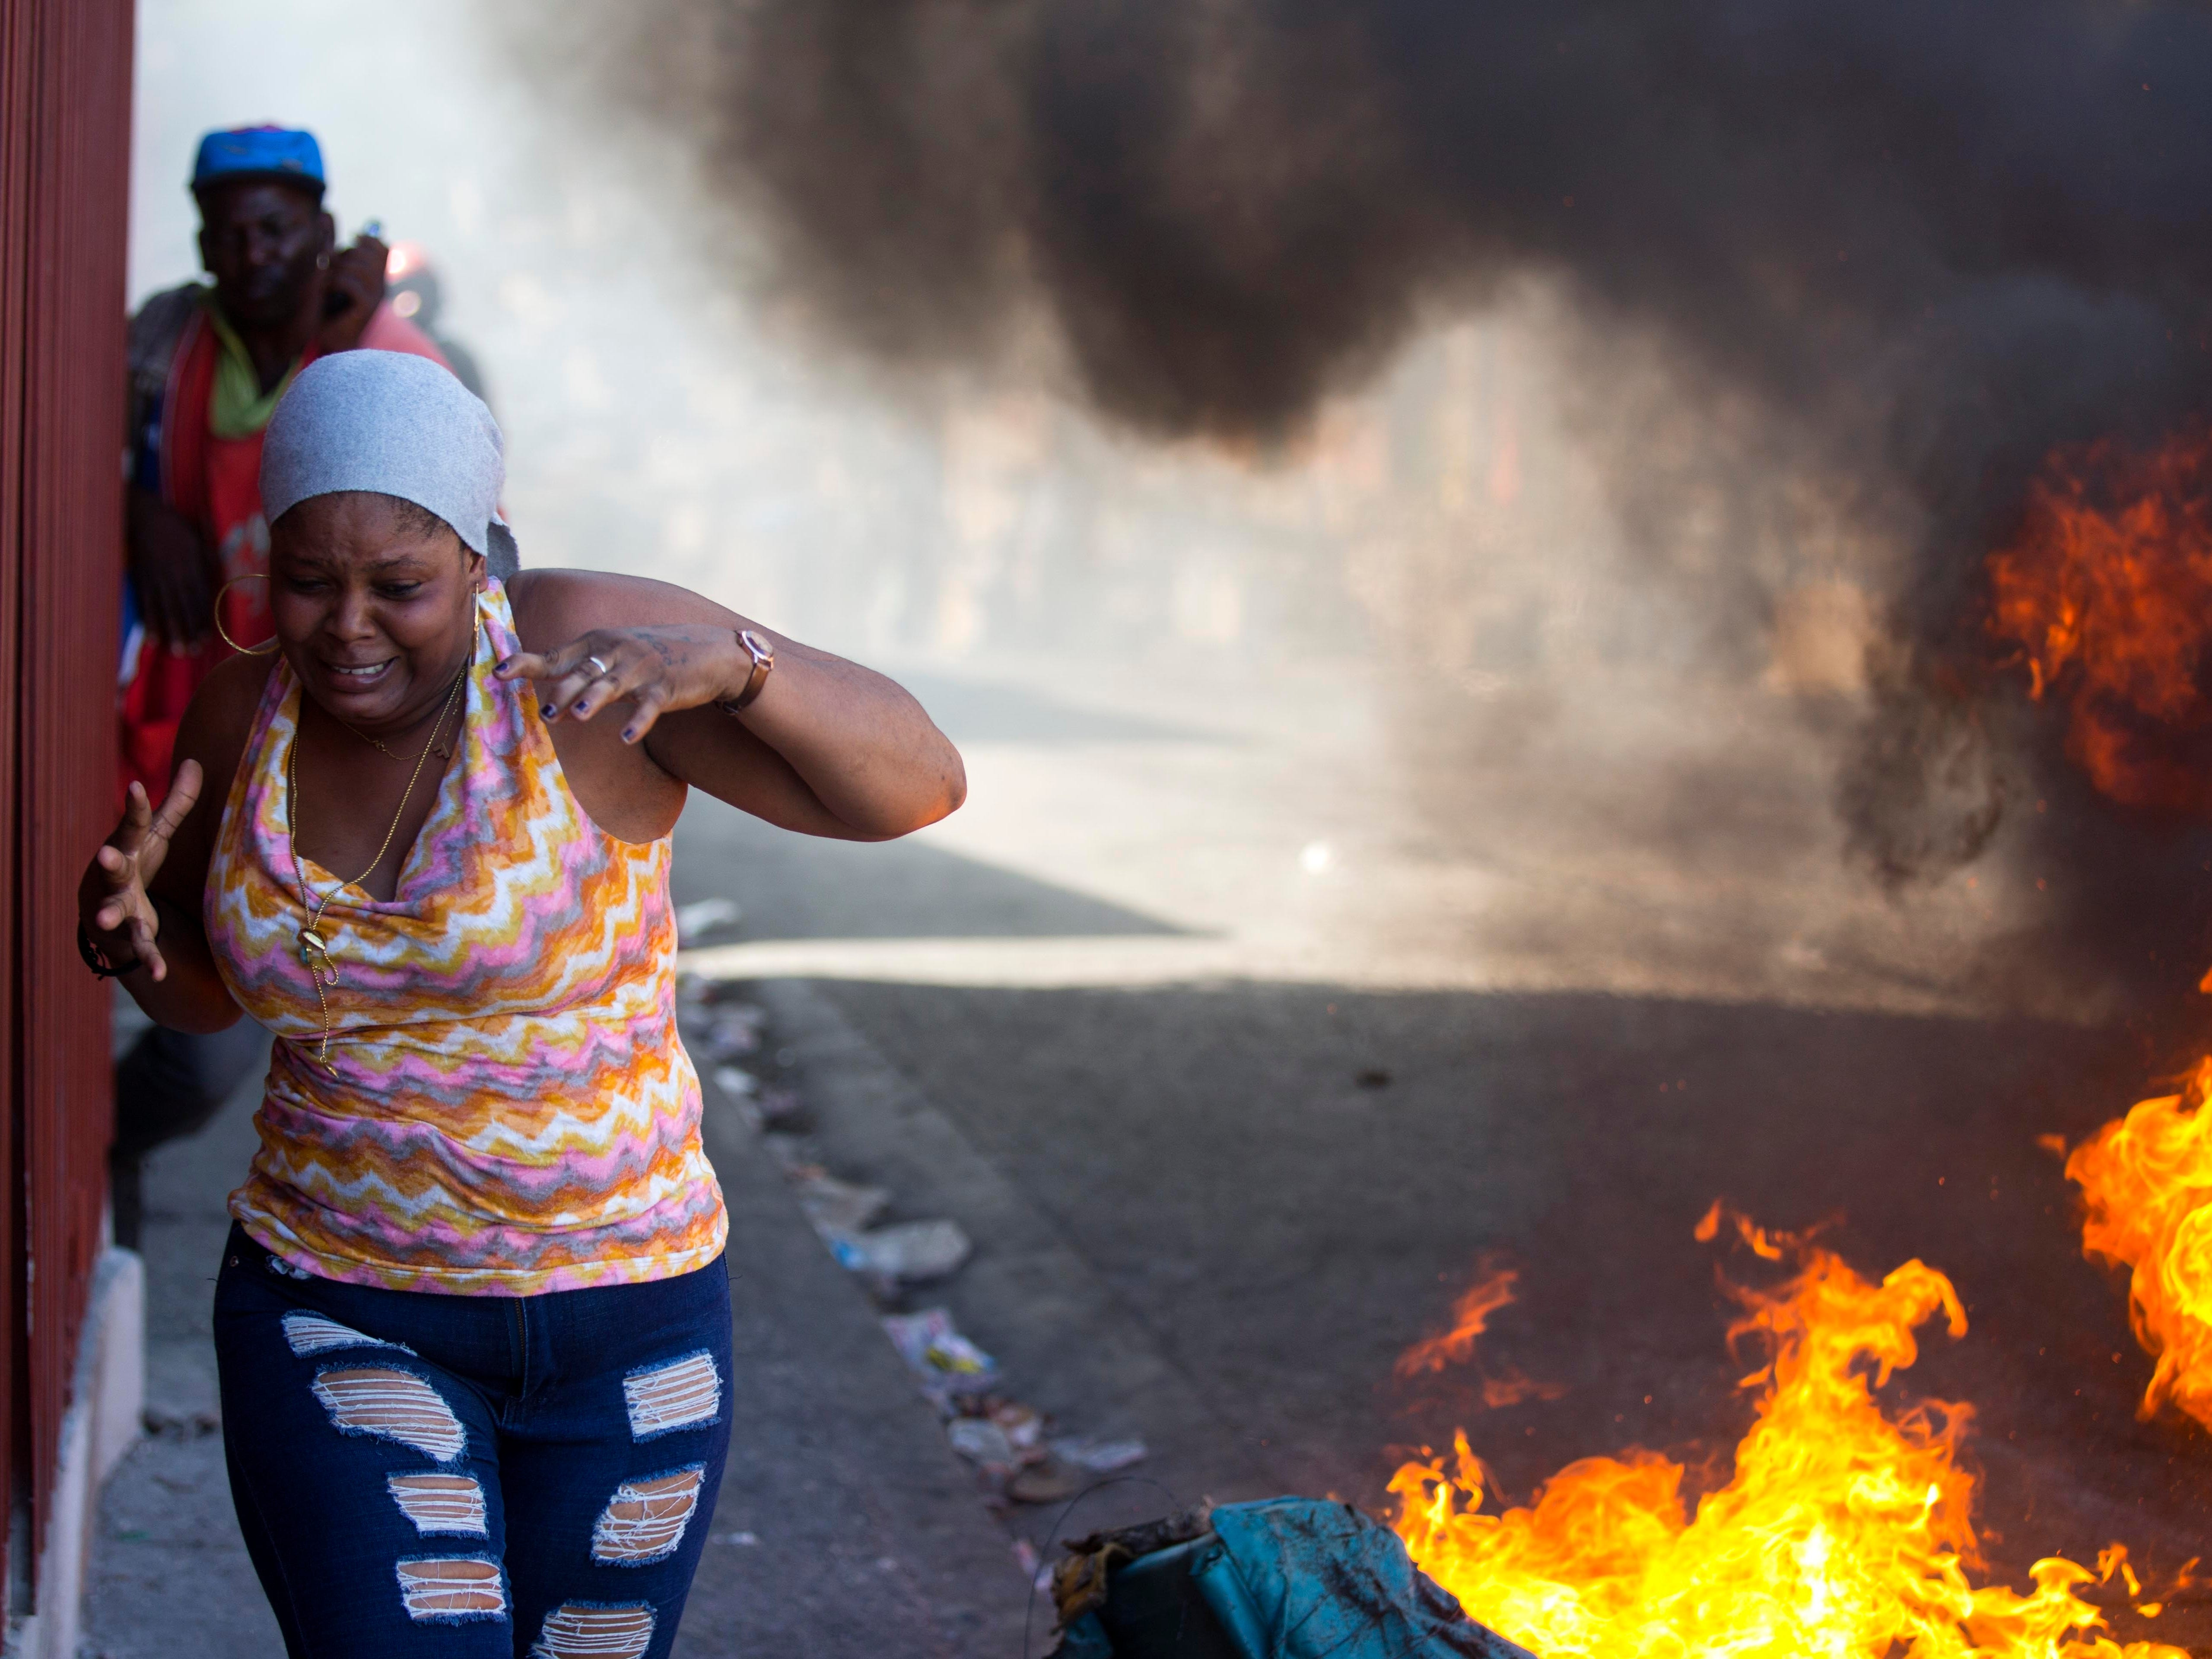 Residents run past burning barricades during a strike that is part of protests demanding to know how Petro Caribe funds have been used by the current and past administrations, in Port-au-Prince, Haiti, Monday, Nov. 19, 2018. Much of the financial support to help Haiti rebuild after the 2010 earthquake comes from Venezuela's Petro Caribe fund, a 2005 pact that gives suppliers below-market financing for oil and is under the control of the central government.